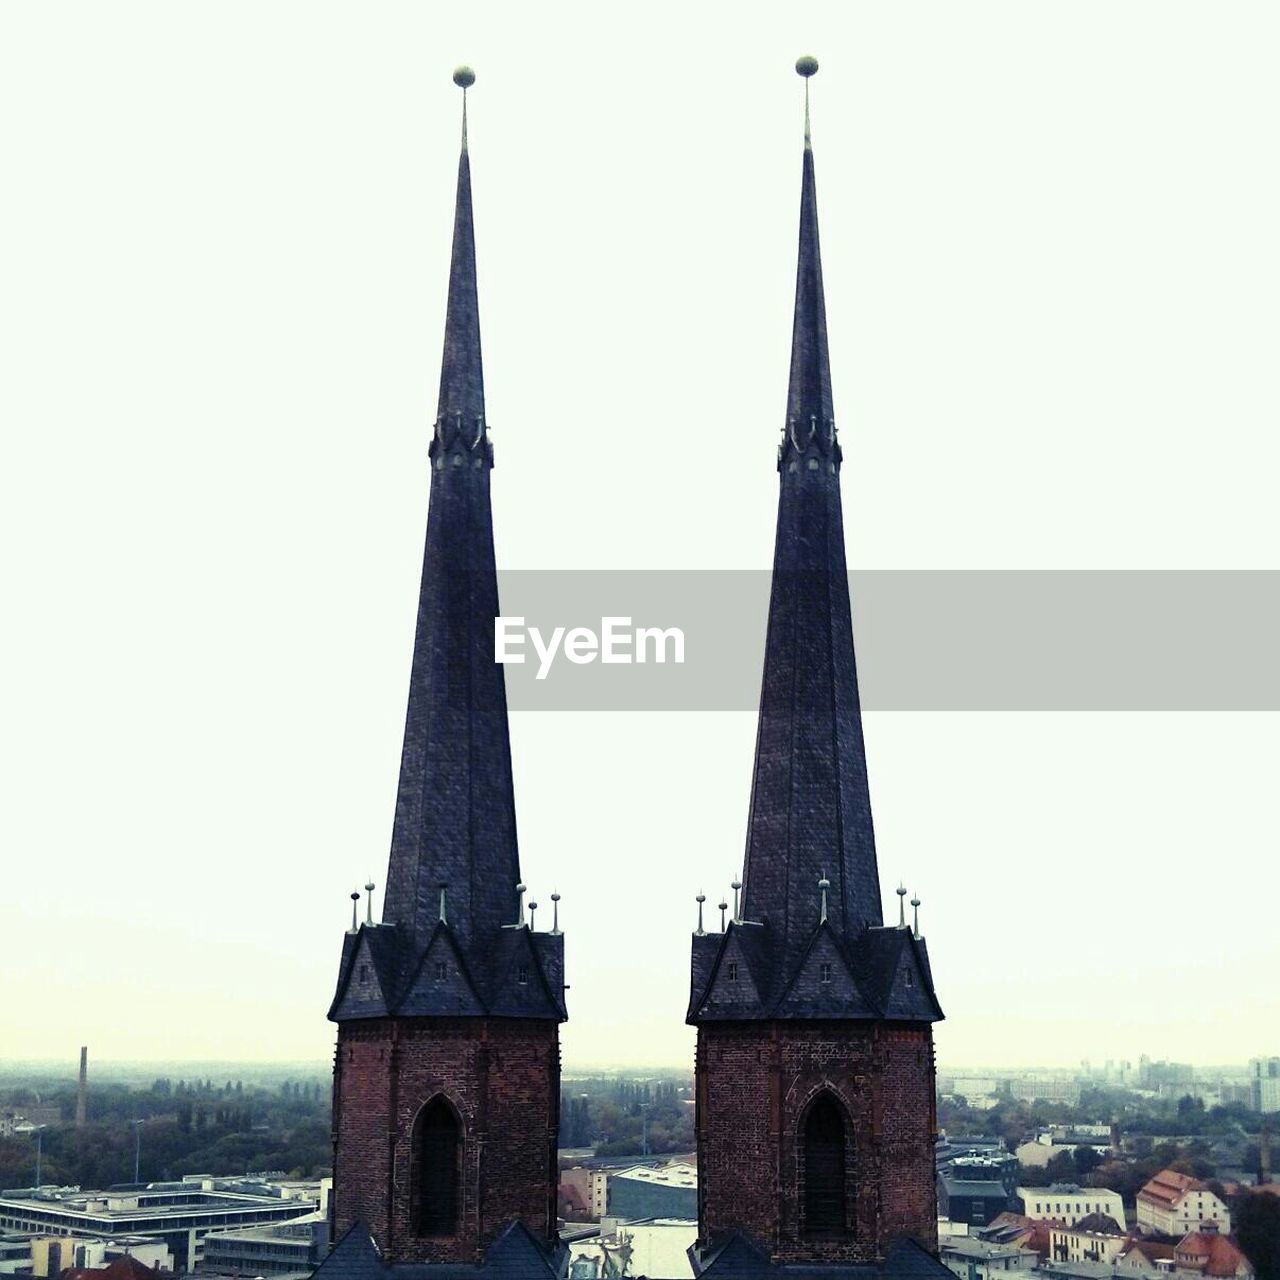 View of twin steeples against clear sky